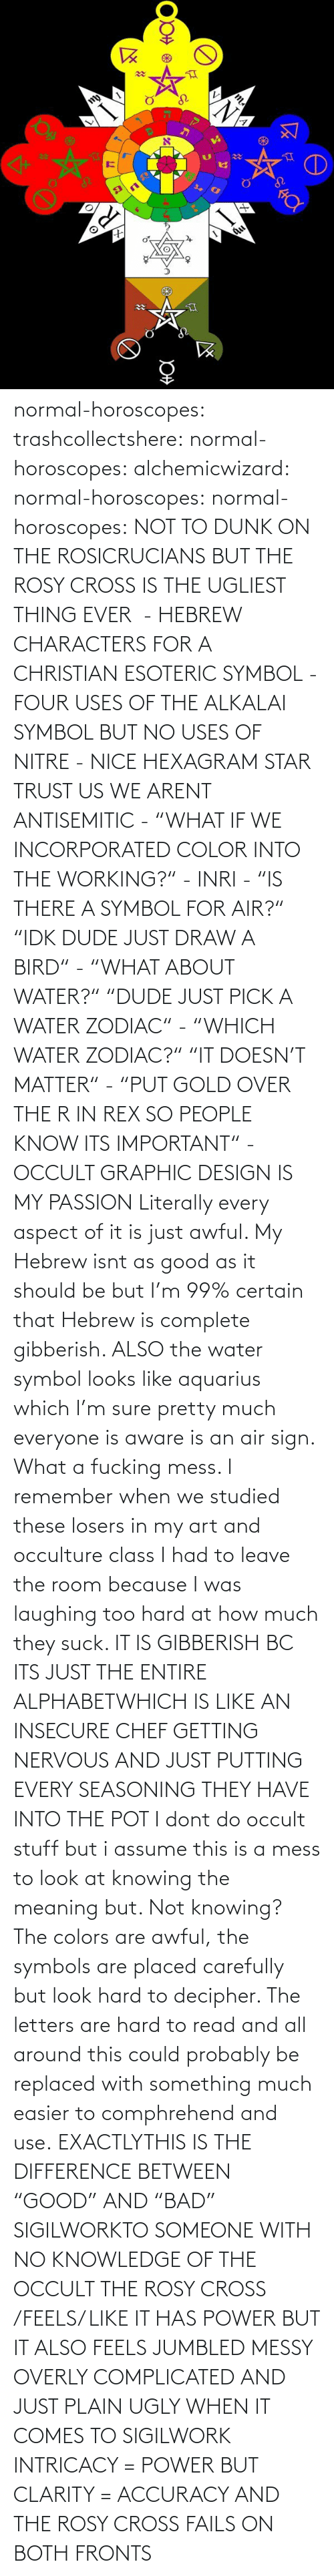 "Entire: normal-horoscopes:  trashcollectshere: normal-horoscopes:   alchemicwizard:  normal-horoscopes:  normal-horoscopes: NOT TO DUNK ON THE ROSICRUCIANS BUT THE ROSY CROSS IS THE UGLIEST THING EVER  - HEBREW CHARACTERS FOR A CHRISTIAN ESOTERIC SYMBOL - FOUR USES OF THE ALKALAI SYMBOL BUT NO USES OF NITRE - NICE HEXAGRAM STAR TRUST US WE ARENT ANTISEMITIC - ""WHAT IF WE INCORPORATED COLOR INTO THE WORKING?"" - INRI - ""IS THERE A SYMBOL FOR AIR?"" ""IDK DUDE JUST DRAW A BIRD"" - ""WHAT ABOUT WATER?"" ""DUDE JUST PICK A WATER ZODIAC"" - ""WHICH WATER ZODIAC?"" ""IT DOESN'T MATTER"" - ""PUT GOLD OVER THE R IN REX SO PEOPLE KNOW ITS IMPORTANT"" - OCCULT GRAPHIC DESIGN IS MY PASSION  Literally every aspect of it is just awful. My Hebrew isnt as good as it should be but I'm 99% certain that Hebrew is complete gibberish.  ALSO the water symbol looks like aquarius which I'm sure pretty much everyone is aware is an air sign. What a fucking mess.  I remember when we studied these losers in my art and occulture class I had to leave the room because I was laughing too hard at how much they suck.   IT IS GIBBERISH BC ITS JUST THE ENTIRE ALPHABETWHICH IS LIKE AN INSECURE CHEF GETTING NERVOUS AND JUST PUTTING EVERY SEASONING THEY HAVE INTO THE POT     I dont do occult stuff but i assume this is a mess to look at knowing the meaning but. Not knowing? The colors are awful, the symbols are placed carefully but look hard to decipher. The letters are hard to read and all around this could probably be replaced with something much easier to comphrehend and use.  EXACTLYTHIS IS THE DIFFERENCE BETWEEN ""GOOD"" AND ""BAD"" SIGILWORKTO SOMEONE WITH NO KNOWLEDGE OF THE OCCULT THE ROSY CROSS /FEELS/ LIKE IT HAS POWER BUT IT ALSO FEELS JUMBLED MESSY OVERLY COMPLICATED AND JUST PLAIN UGLY WHEN IT COMES TO SIGILWORK INTRICACY = POWER BUT CLARITY = ACCURACY AND THE ROSY CROSS FAILS ON BOTH FRONTS"